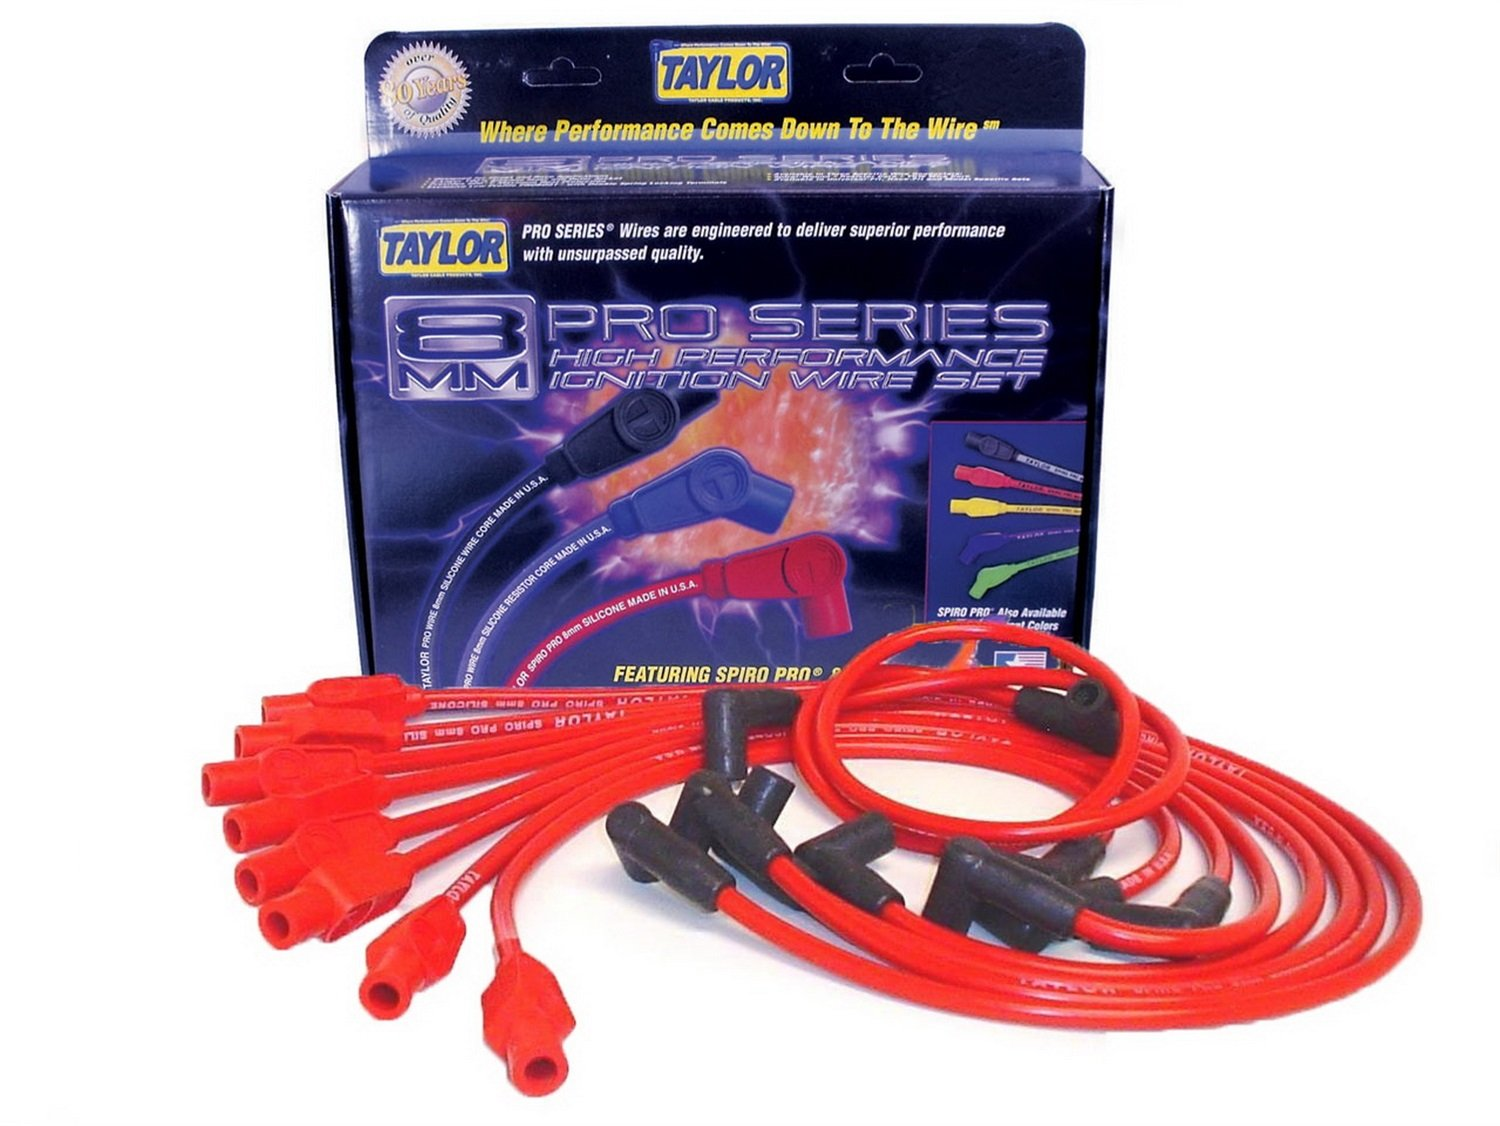 Taylor Cable 74276 Spiro-Pro Red Spark Plug Wire Set